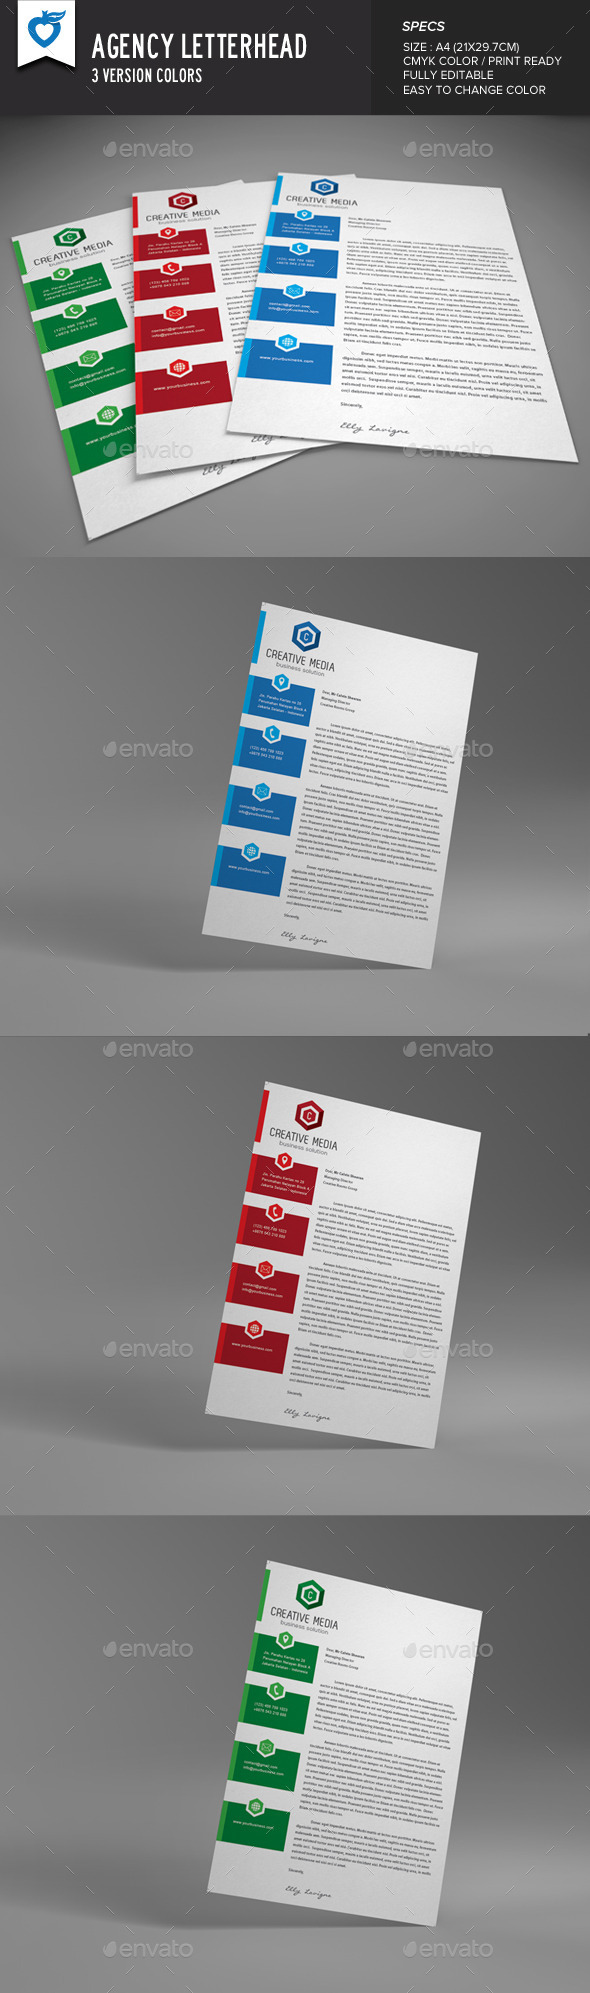 GraphicRiver Agency Letterhead 8853945